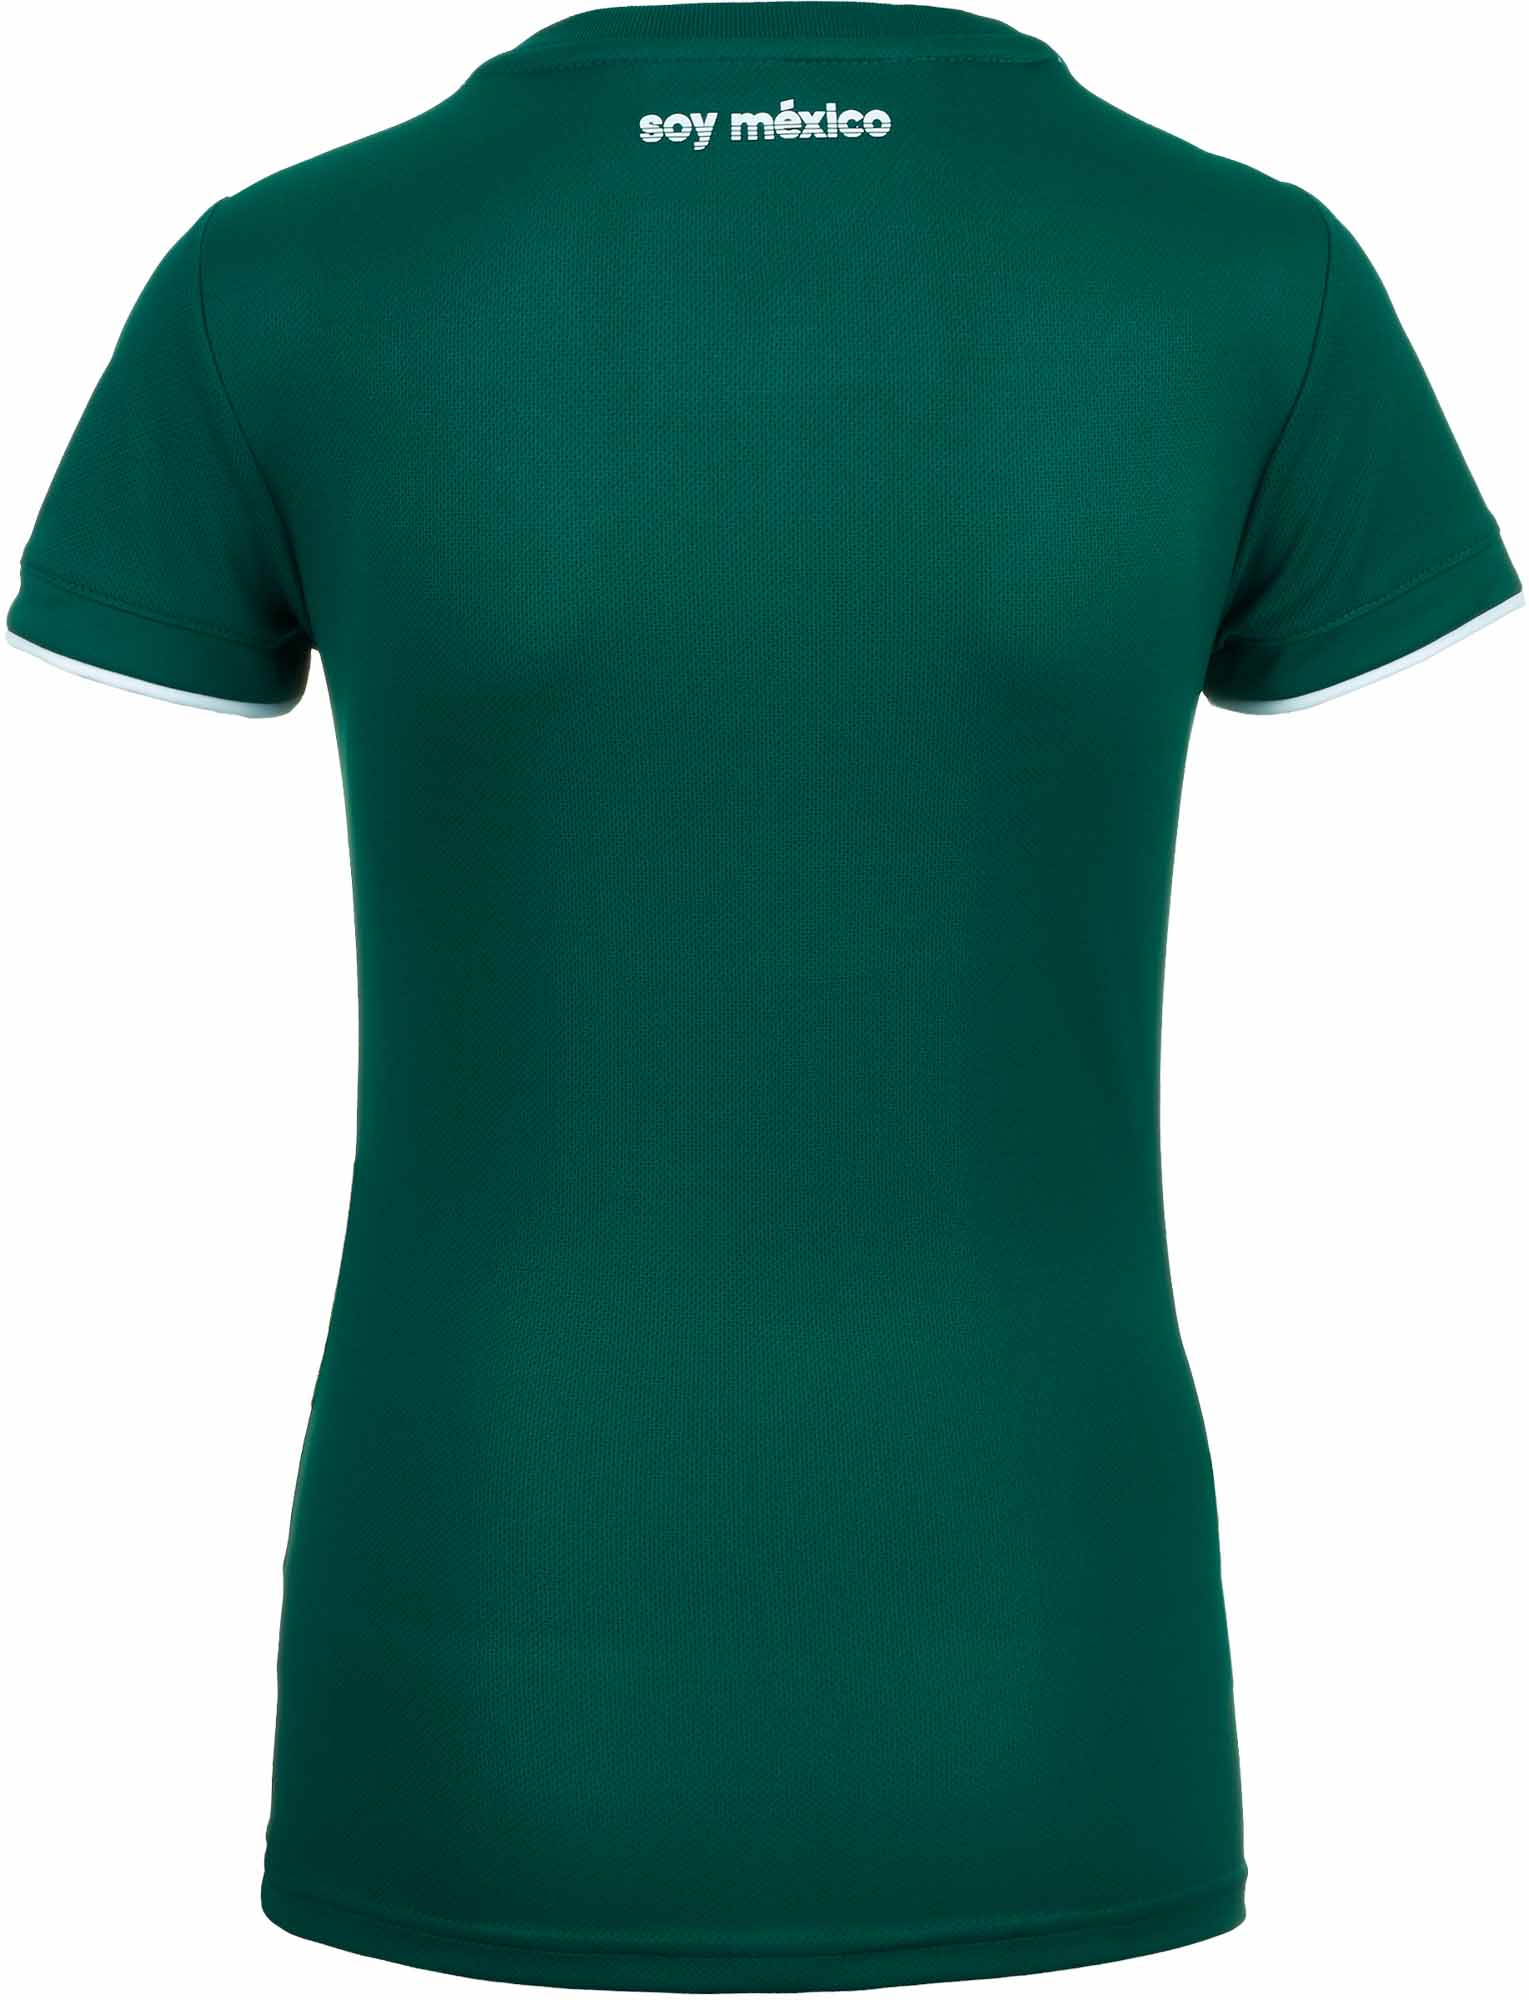 520bee5f4 adidas Womens Mexico Home Jersey 2018-19 - Soccer Master